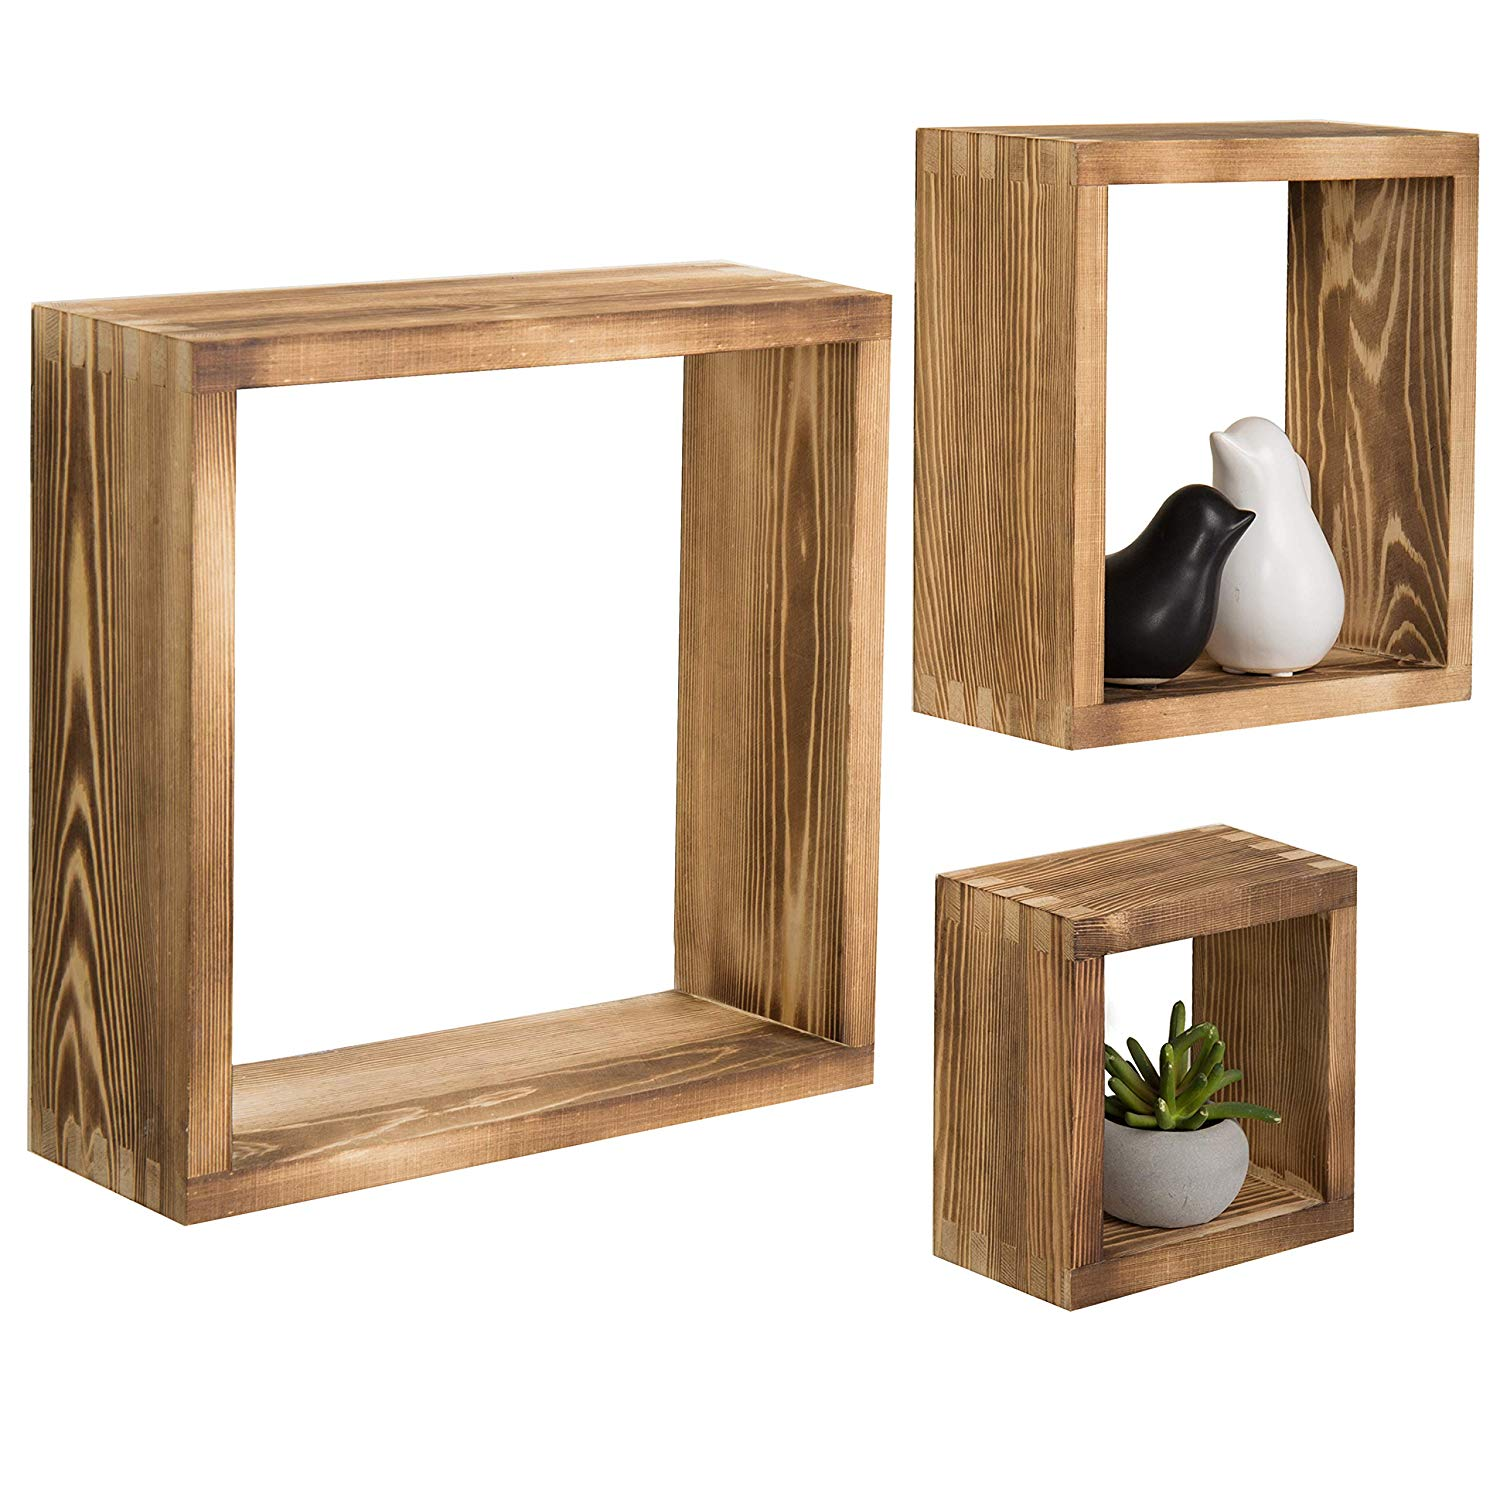 mygift burnt wood wall mounted shadow box square gibsal floating display shelf shelves set home kitchen wrought iron corner stand hanging apartment ikea double desk kmart pool